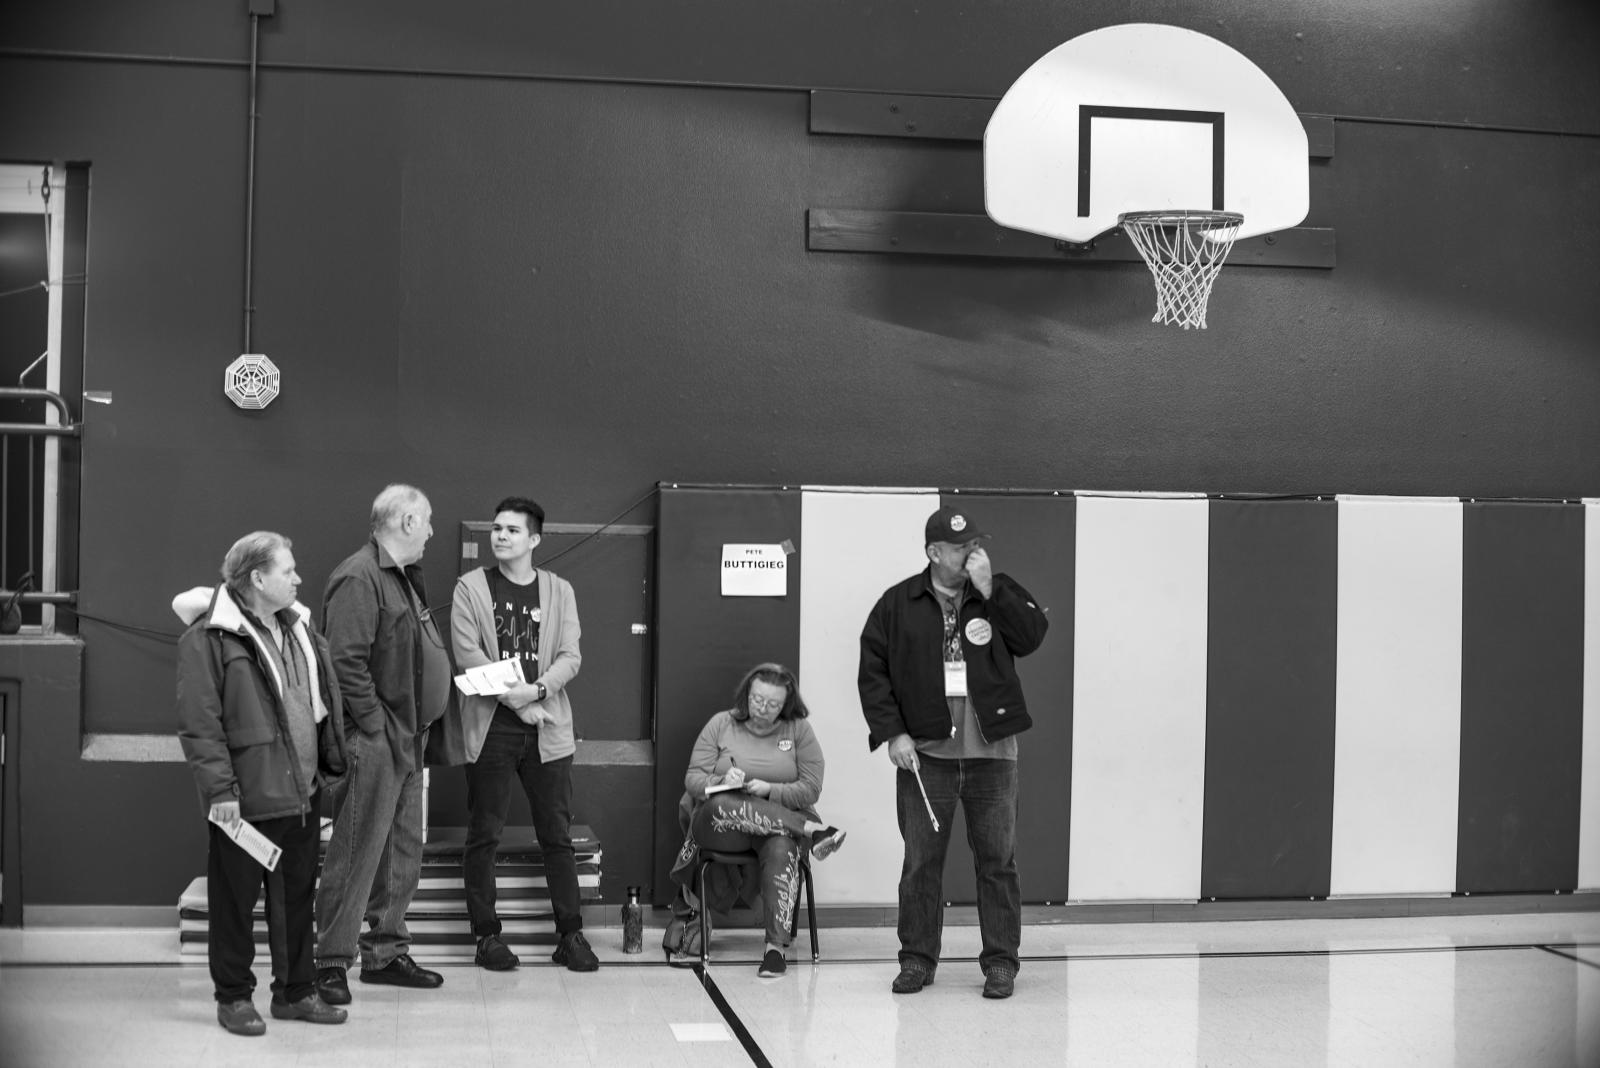 Supporters of Pete Buttigieg, first round of caucus voting in the Nevada Democratic voting. Mt. Charleston, Clark County Nevada. February 2020.